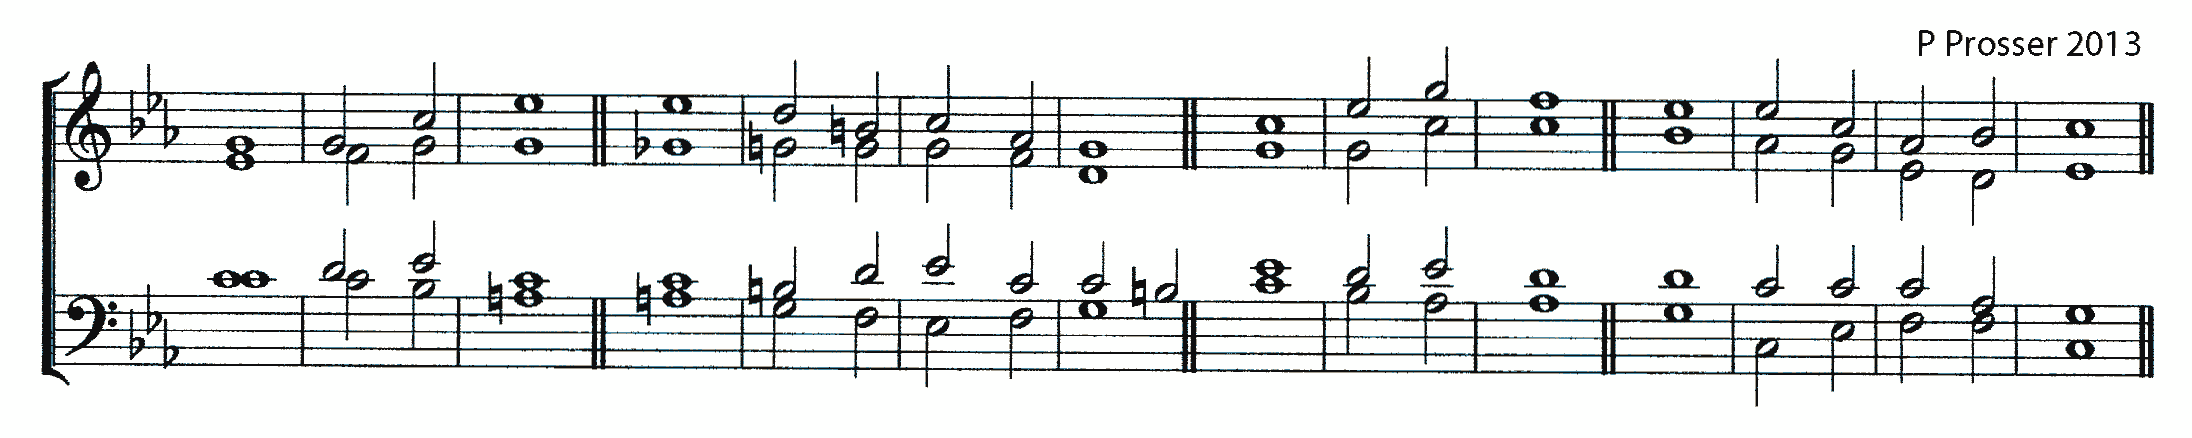 Double chant in C minor by Philip Prosser